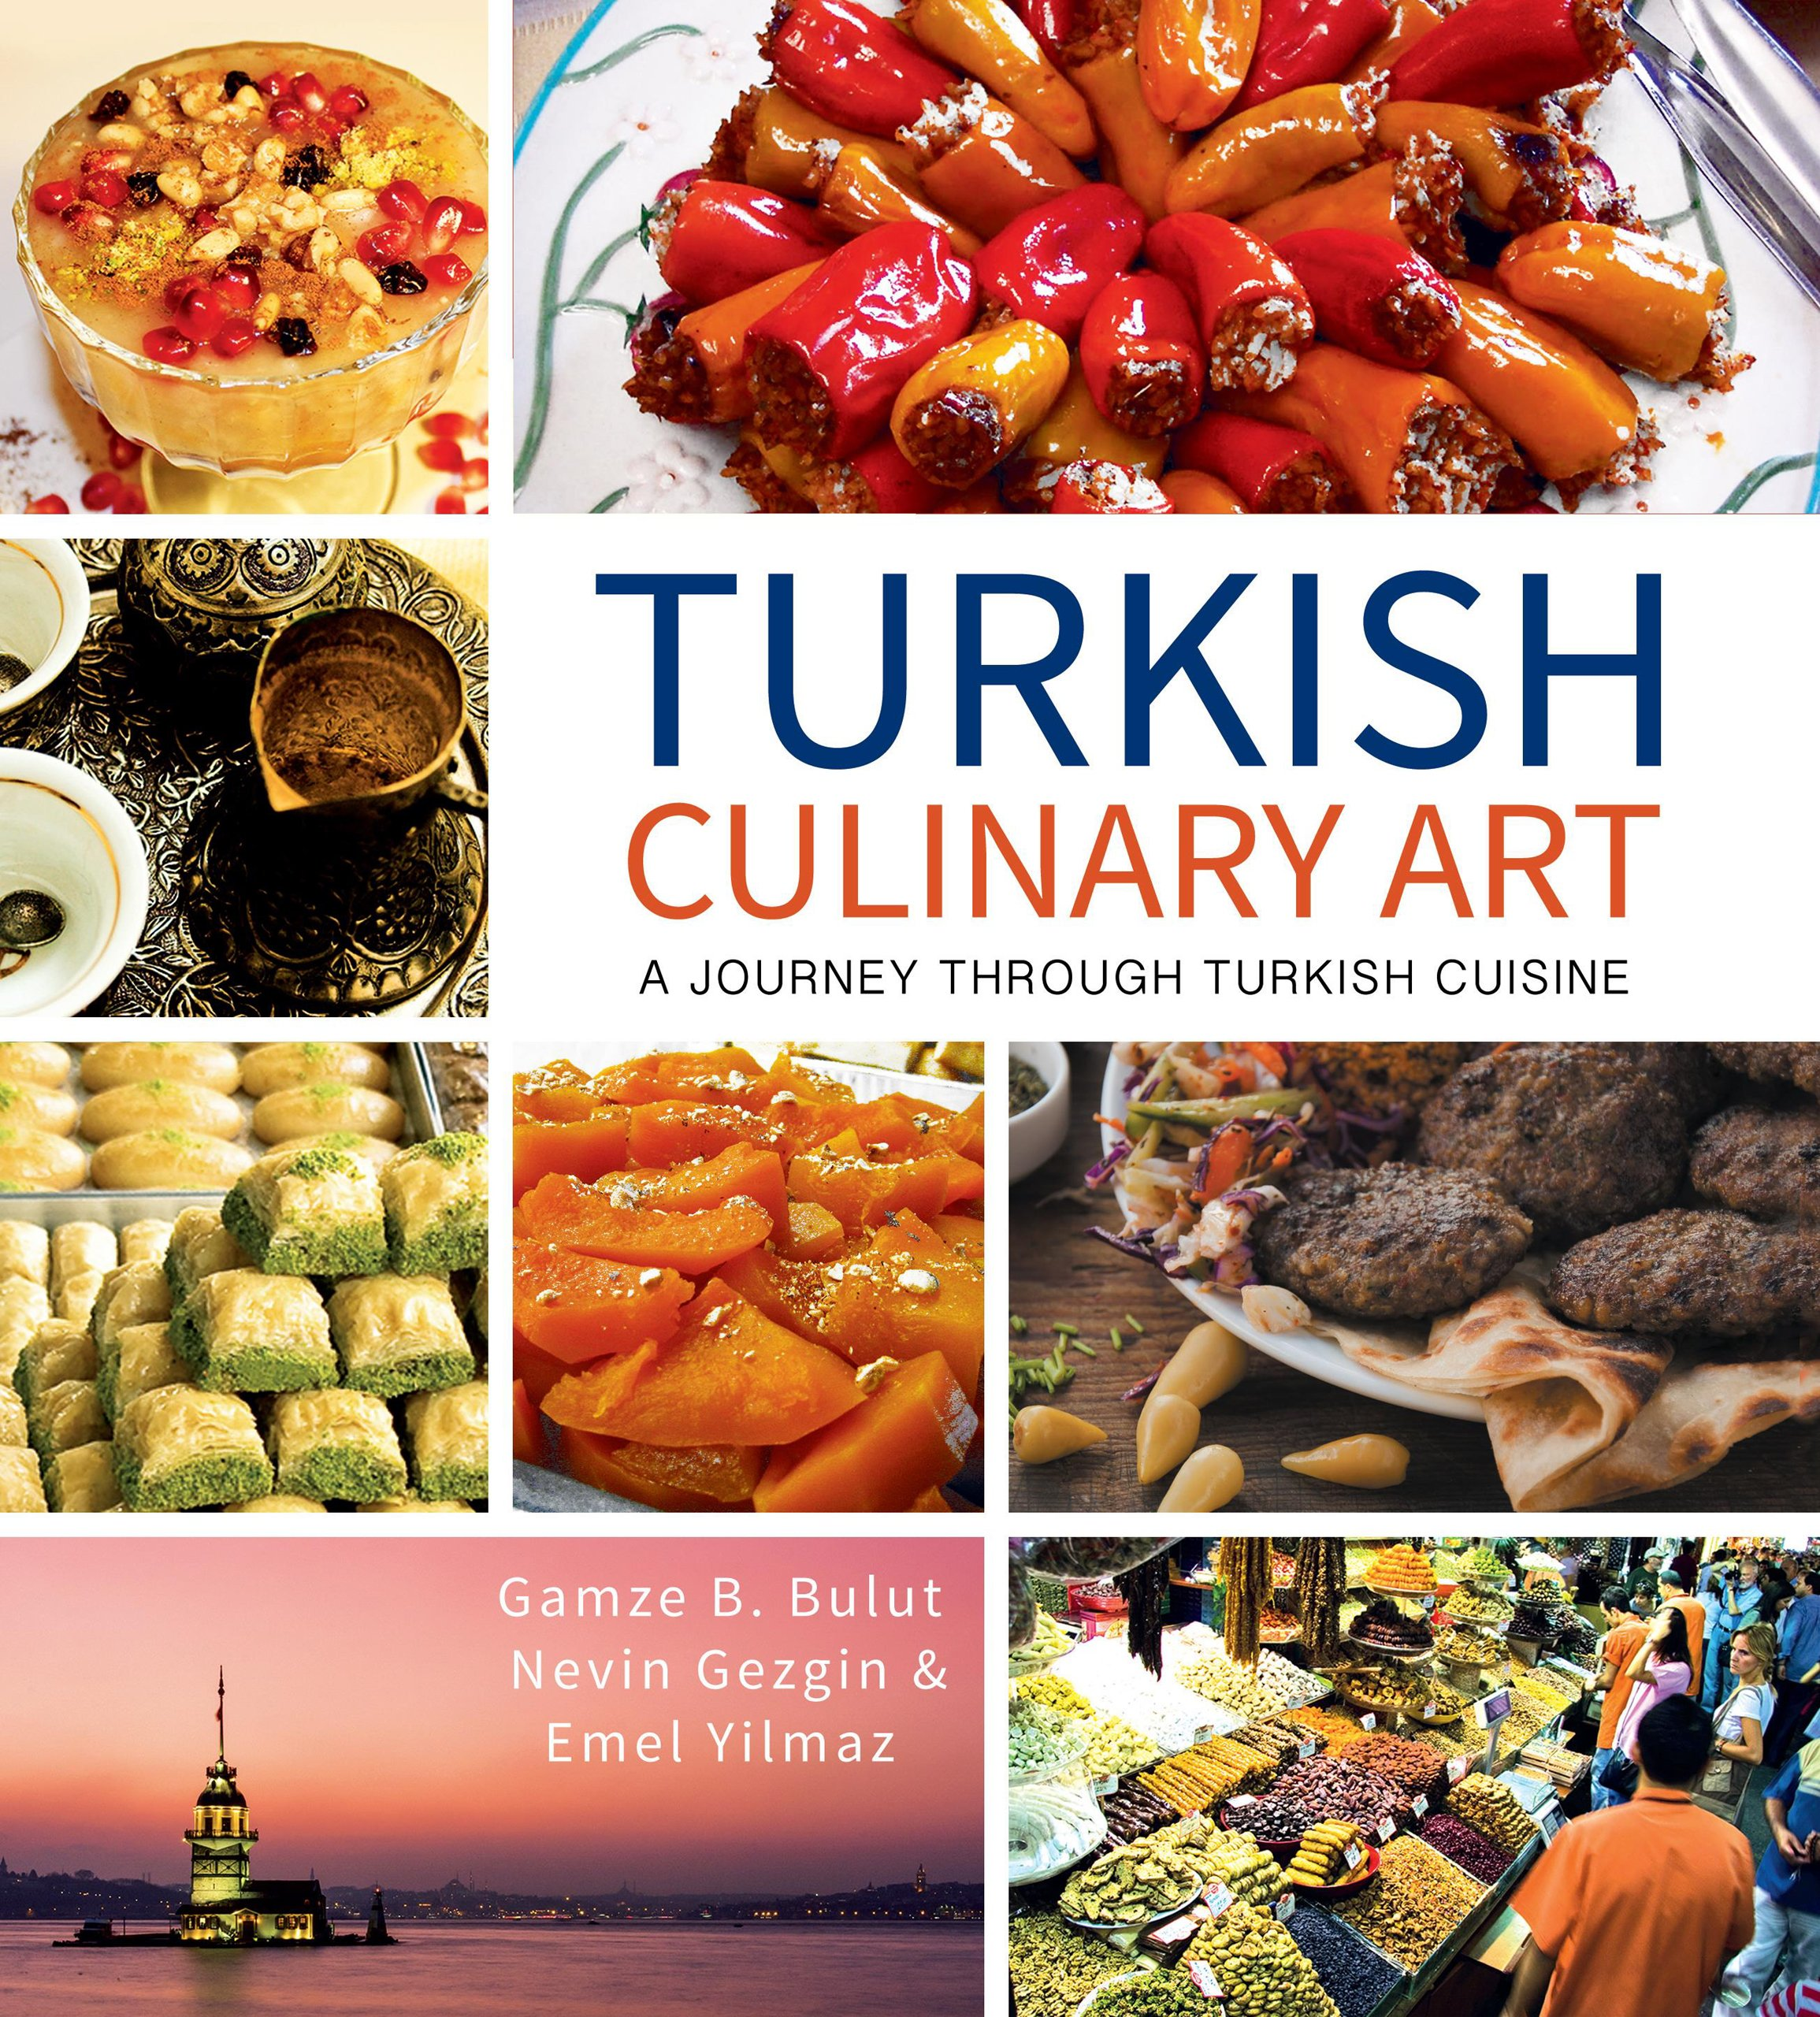 Turkish culinary art a journey through turkish cuisine gamze b turkish culinary art a journey through turkish cuisine gamze b bulut nevin gezgin emel yilmaz 9781935295556 amazon books forumfinder Images